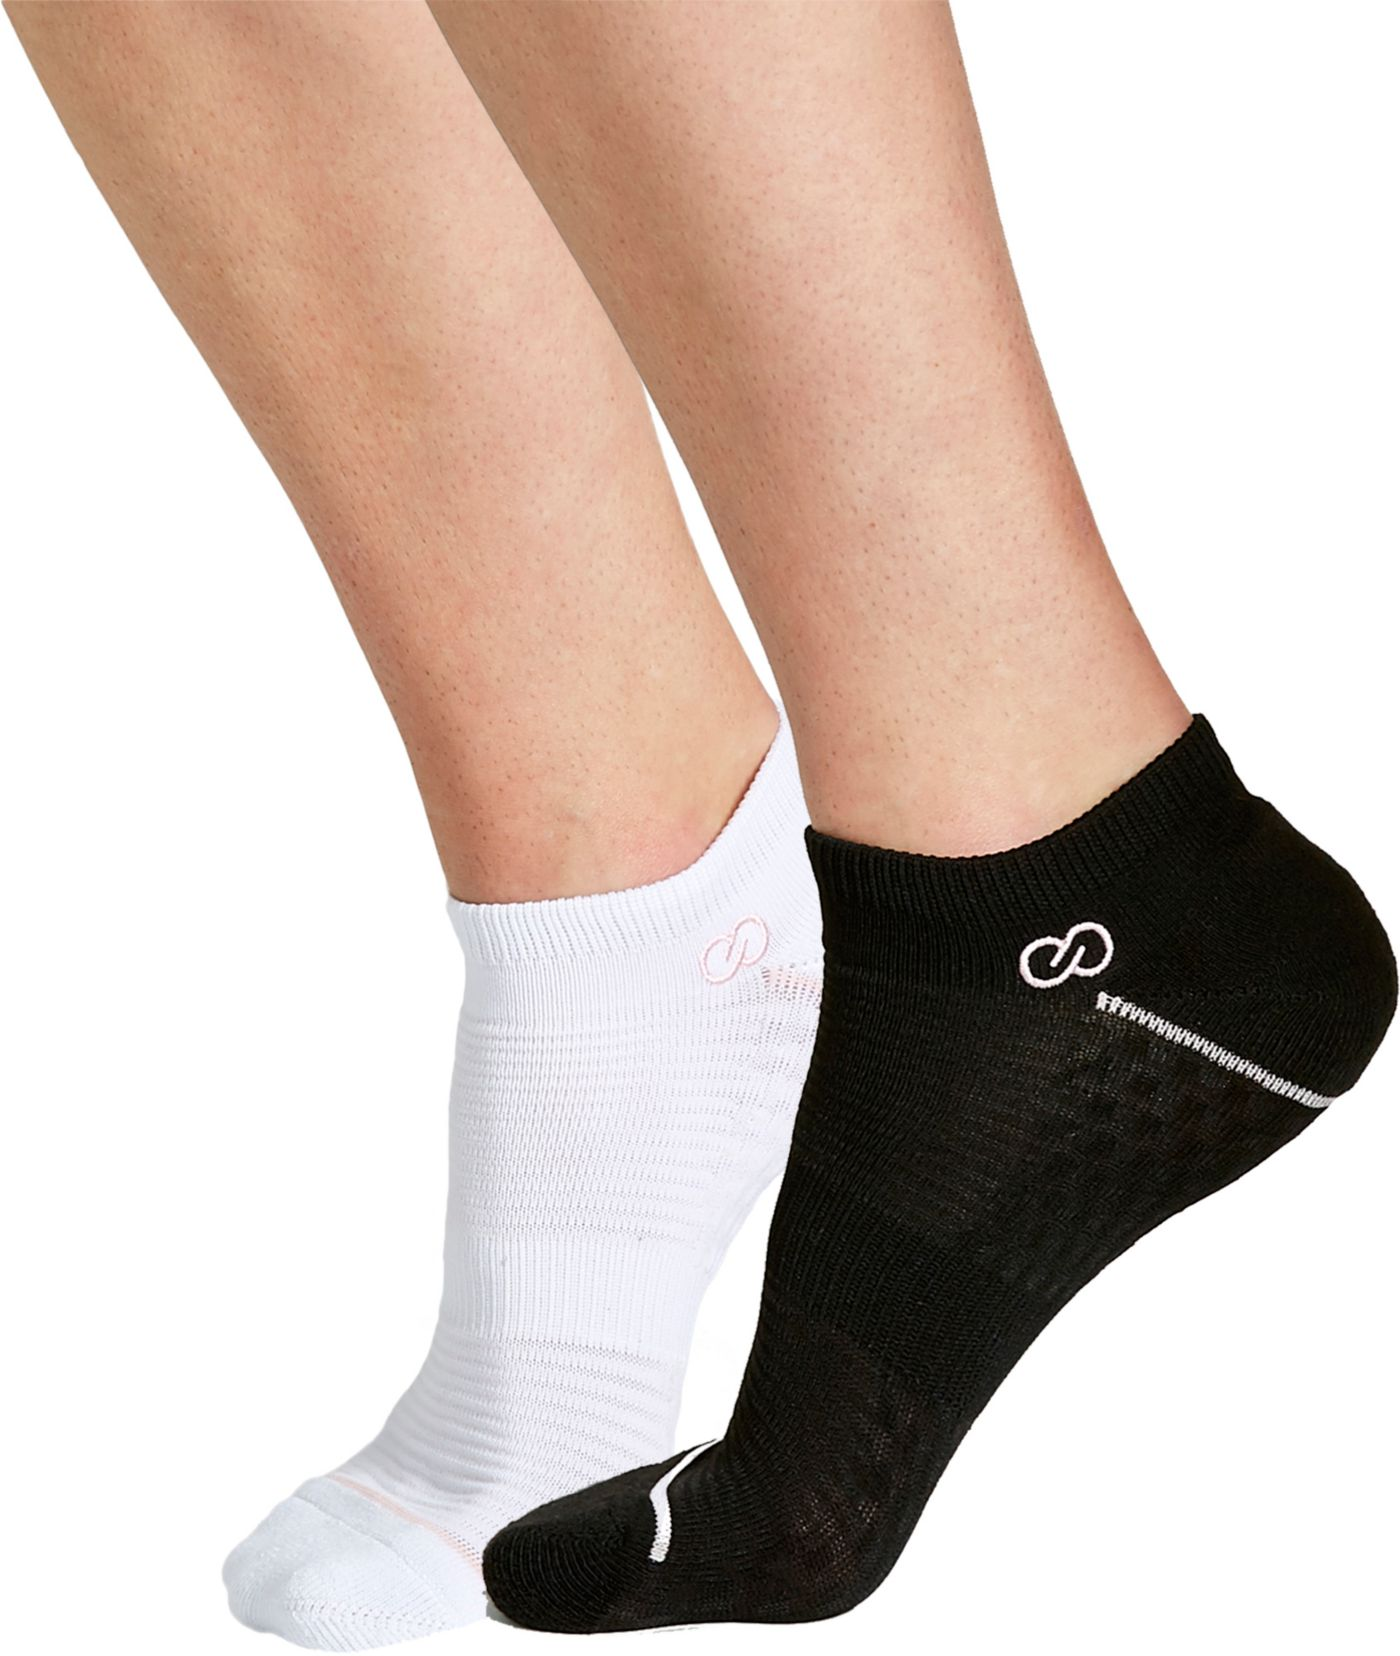 CALIA by Carrie Underwood Texture Trainer No Show Socks 2 Pack